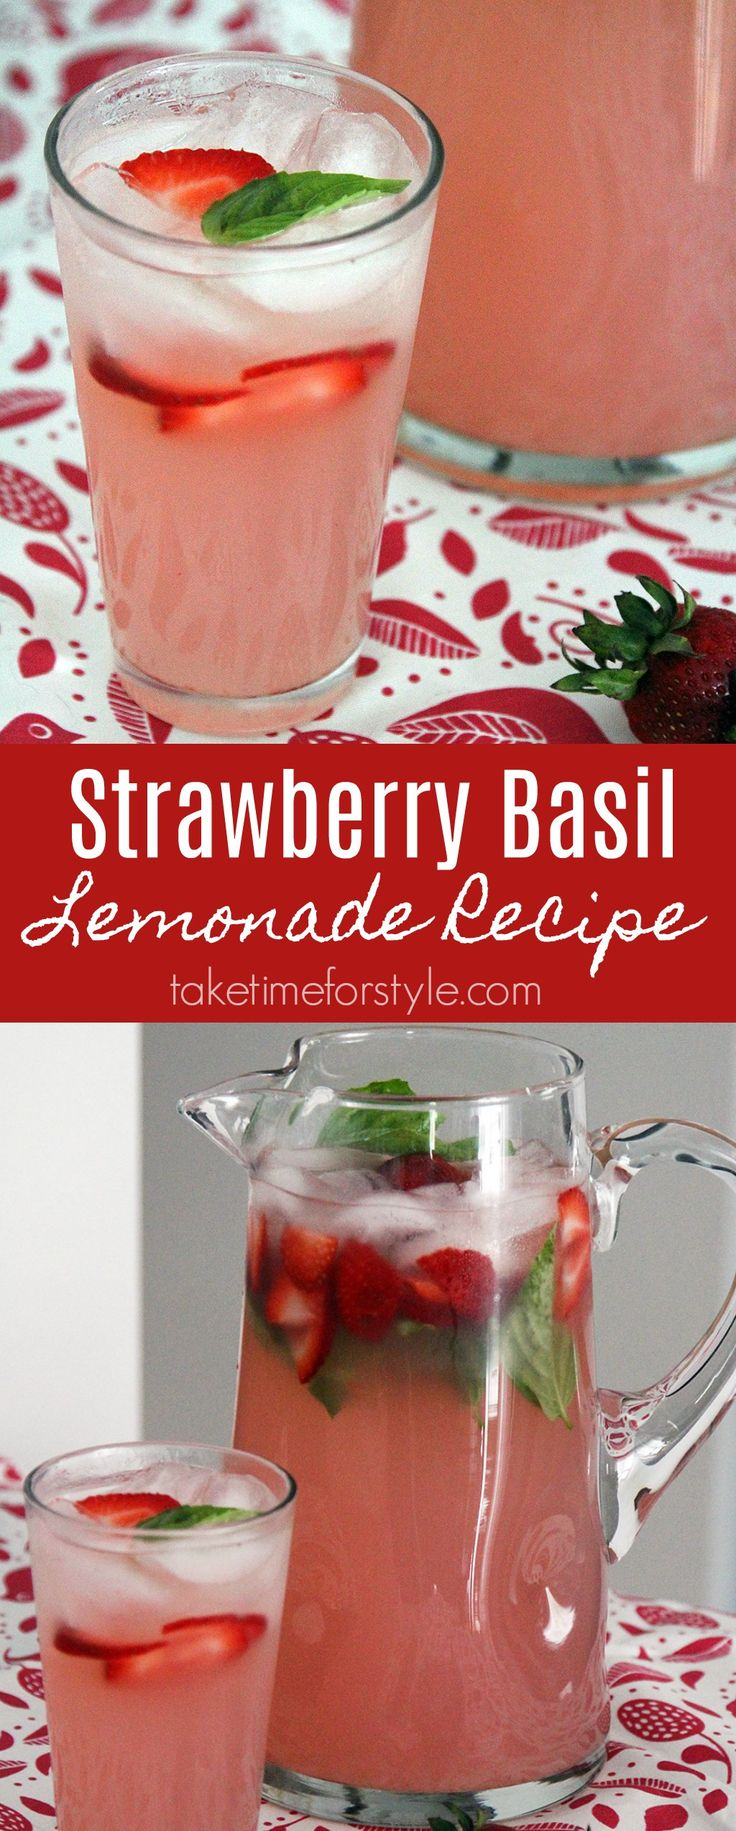 Strawberry basil lemonade recipe - This tasty drink can be made as a cocktail or mocktail! #lemonade #strawberry